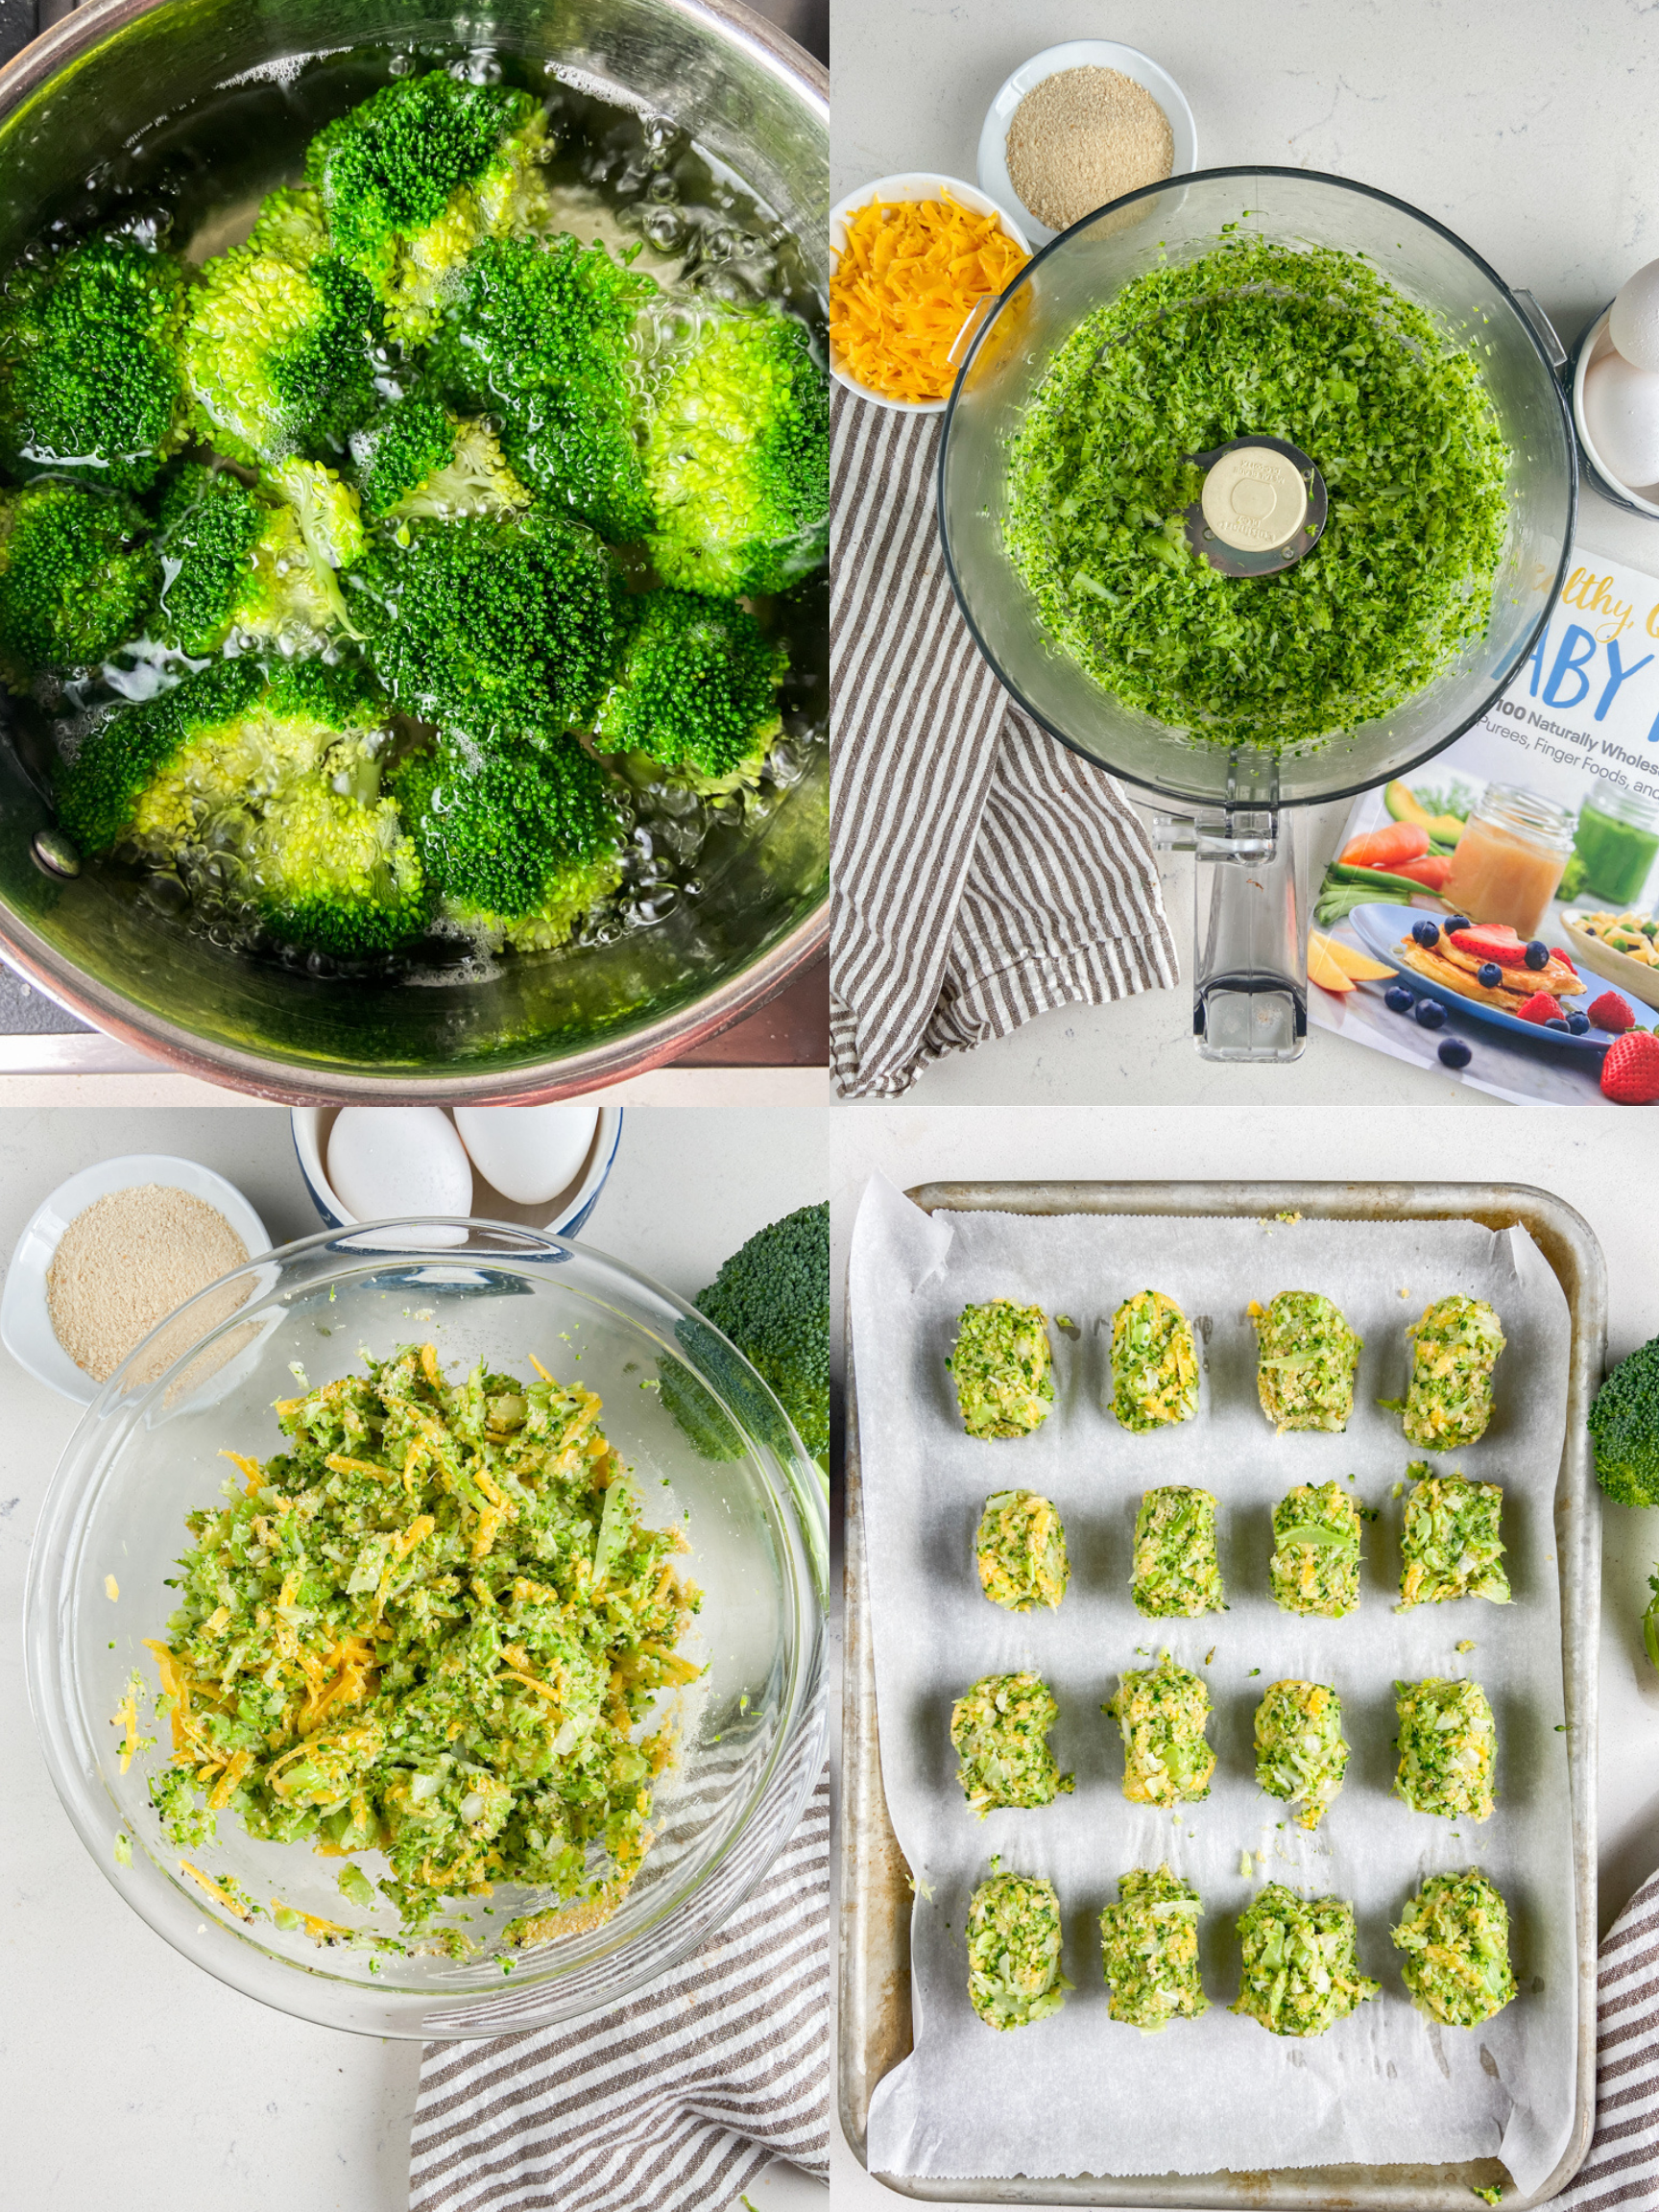 Step by step photos showing how to make broccoli tots.